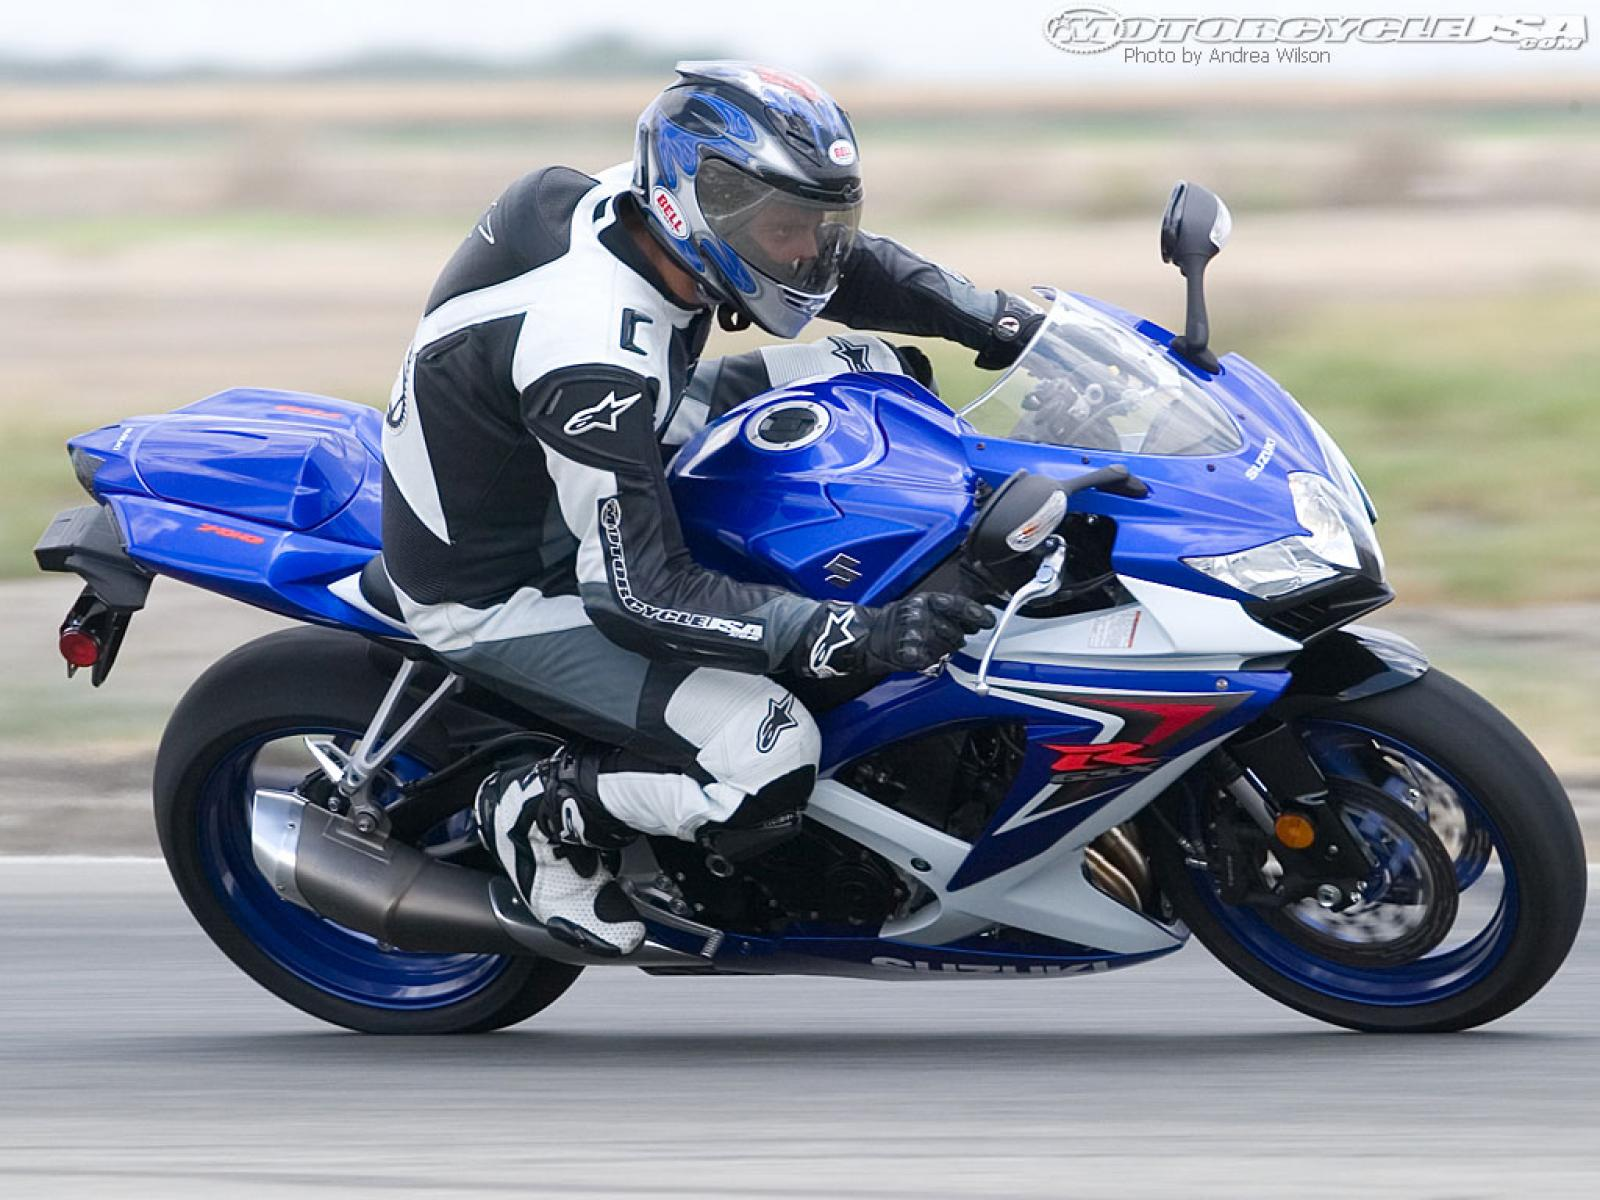 2008 suzuki gsx r 750 moto zombdrive com. Black Bedroom Furniture Sets. Home Design Ideas